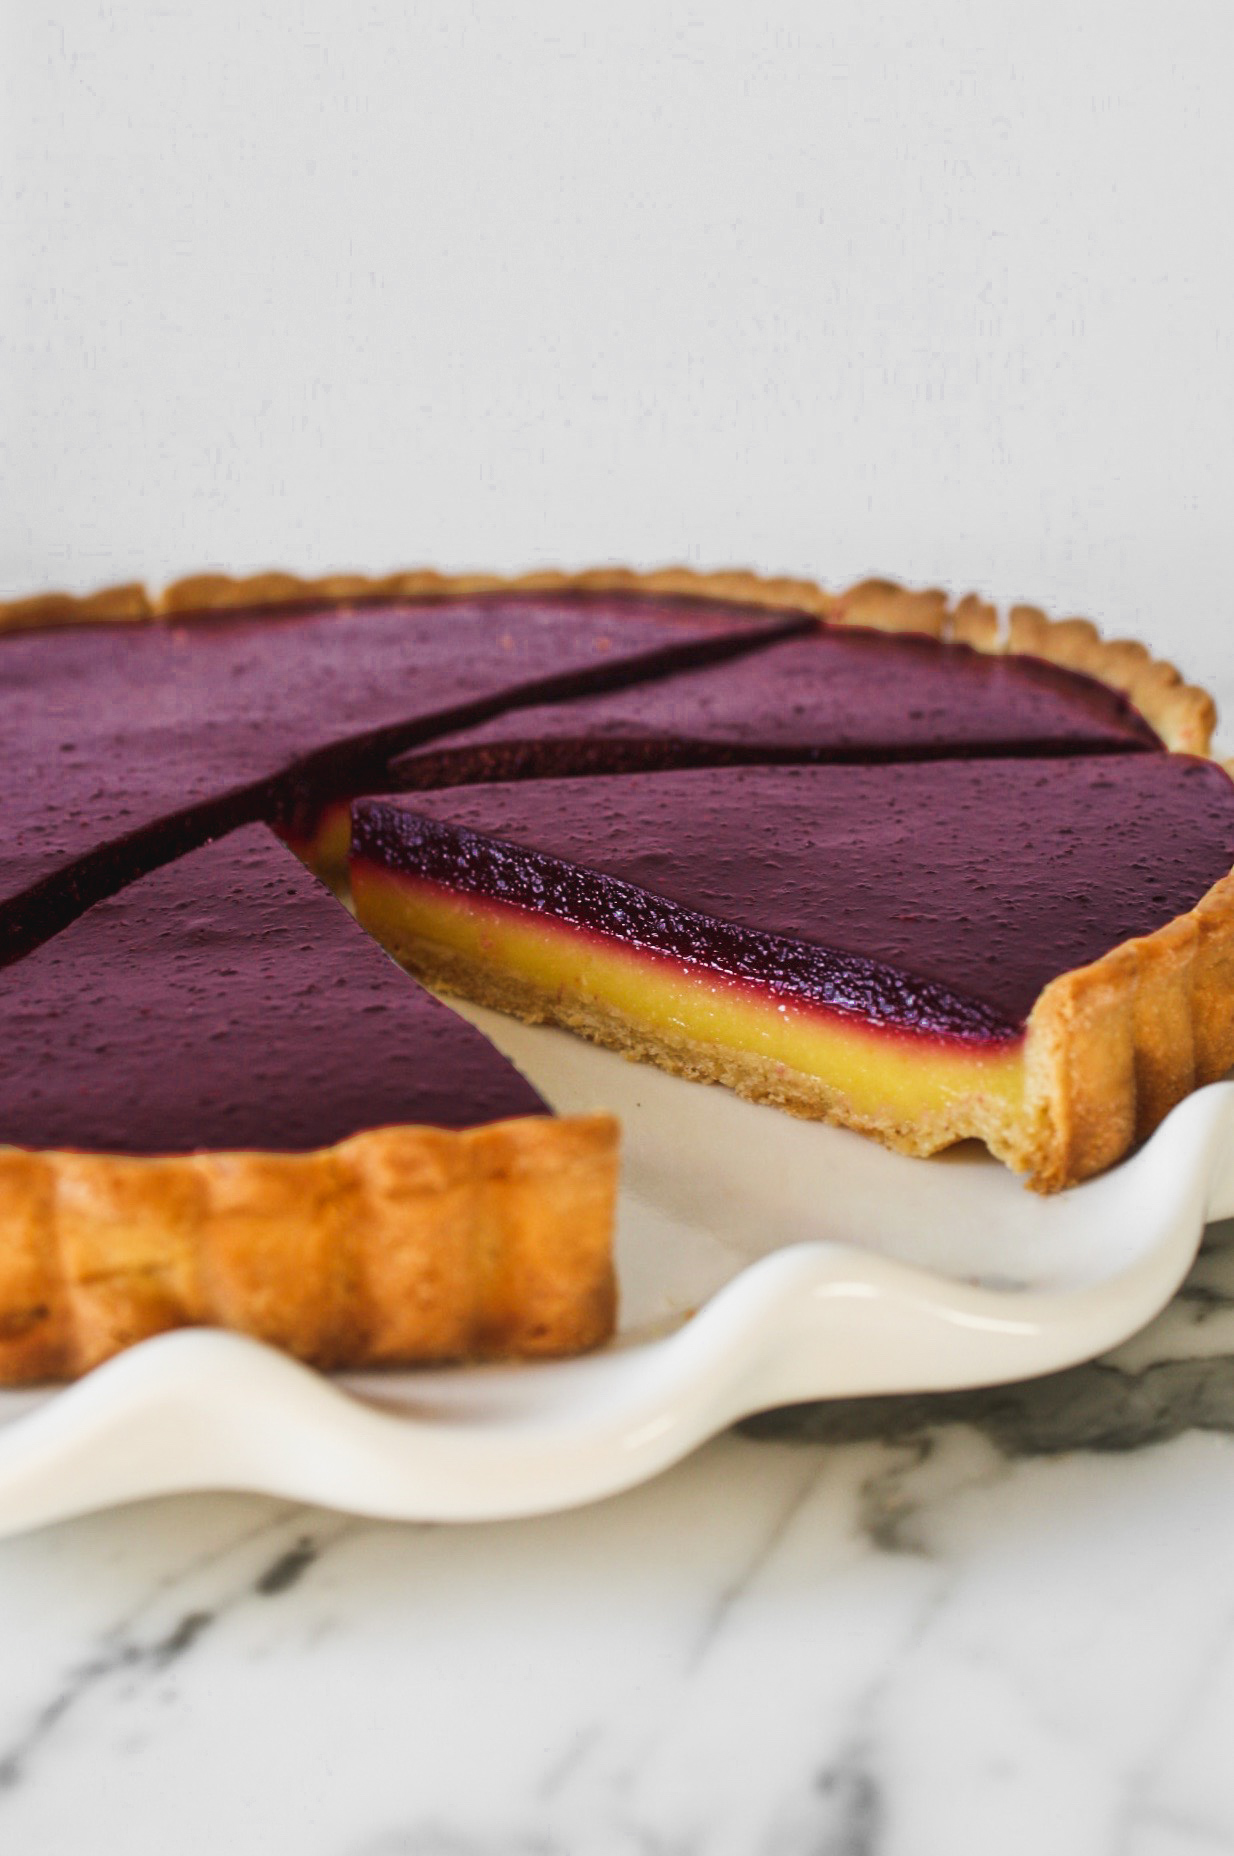 Blueberry lemon tart with yellow and purple layers, set on a gray plate on top of a marble surface.